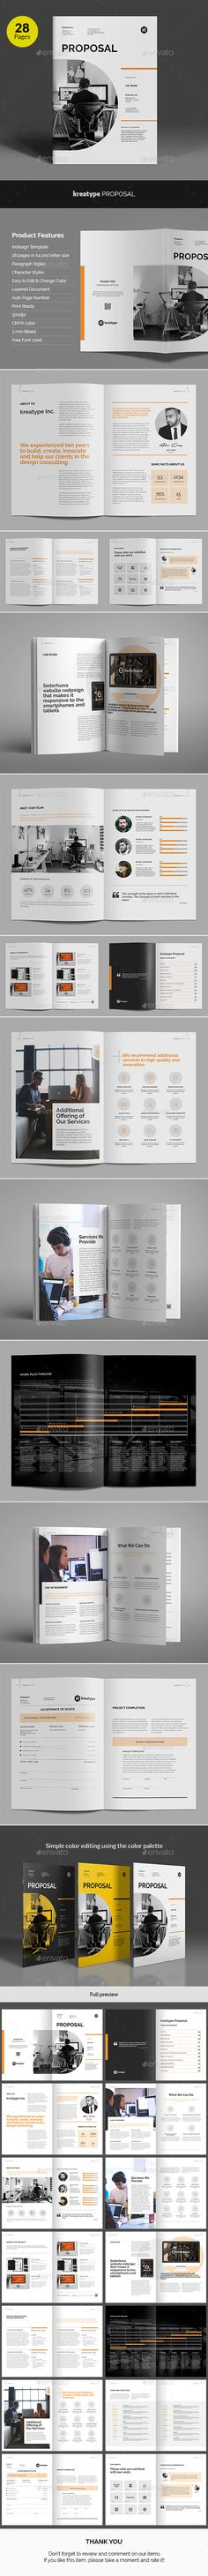 Buy Kreatype Business Proposal by heriwibowo on GraphicRiver. Kreatype Business Proposal The Business Proposal, clean and creative template. This layout is suitable for any . Design Brochure, Booklet Design, Brochure Layout, Graphic Design Branding, Corporate Design, Booklet Layout, Graphisches Design, Cover Design, Layout Design